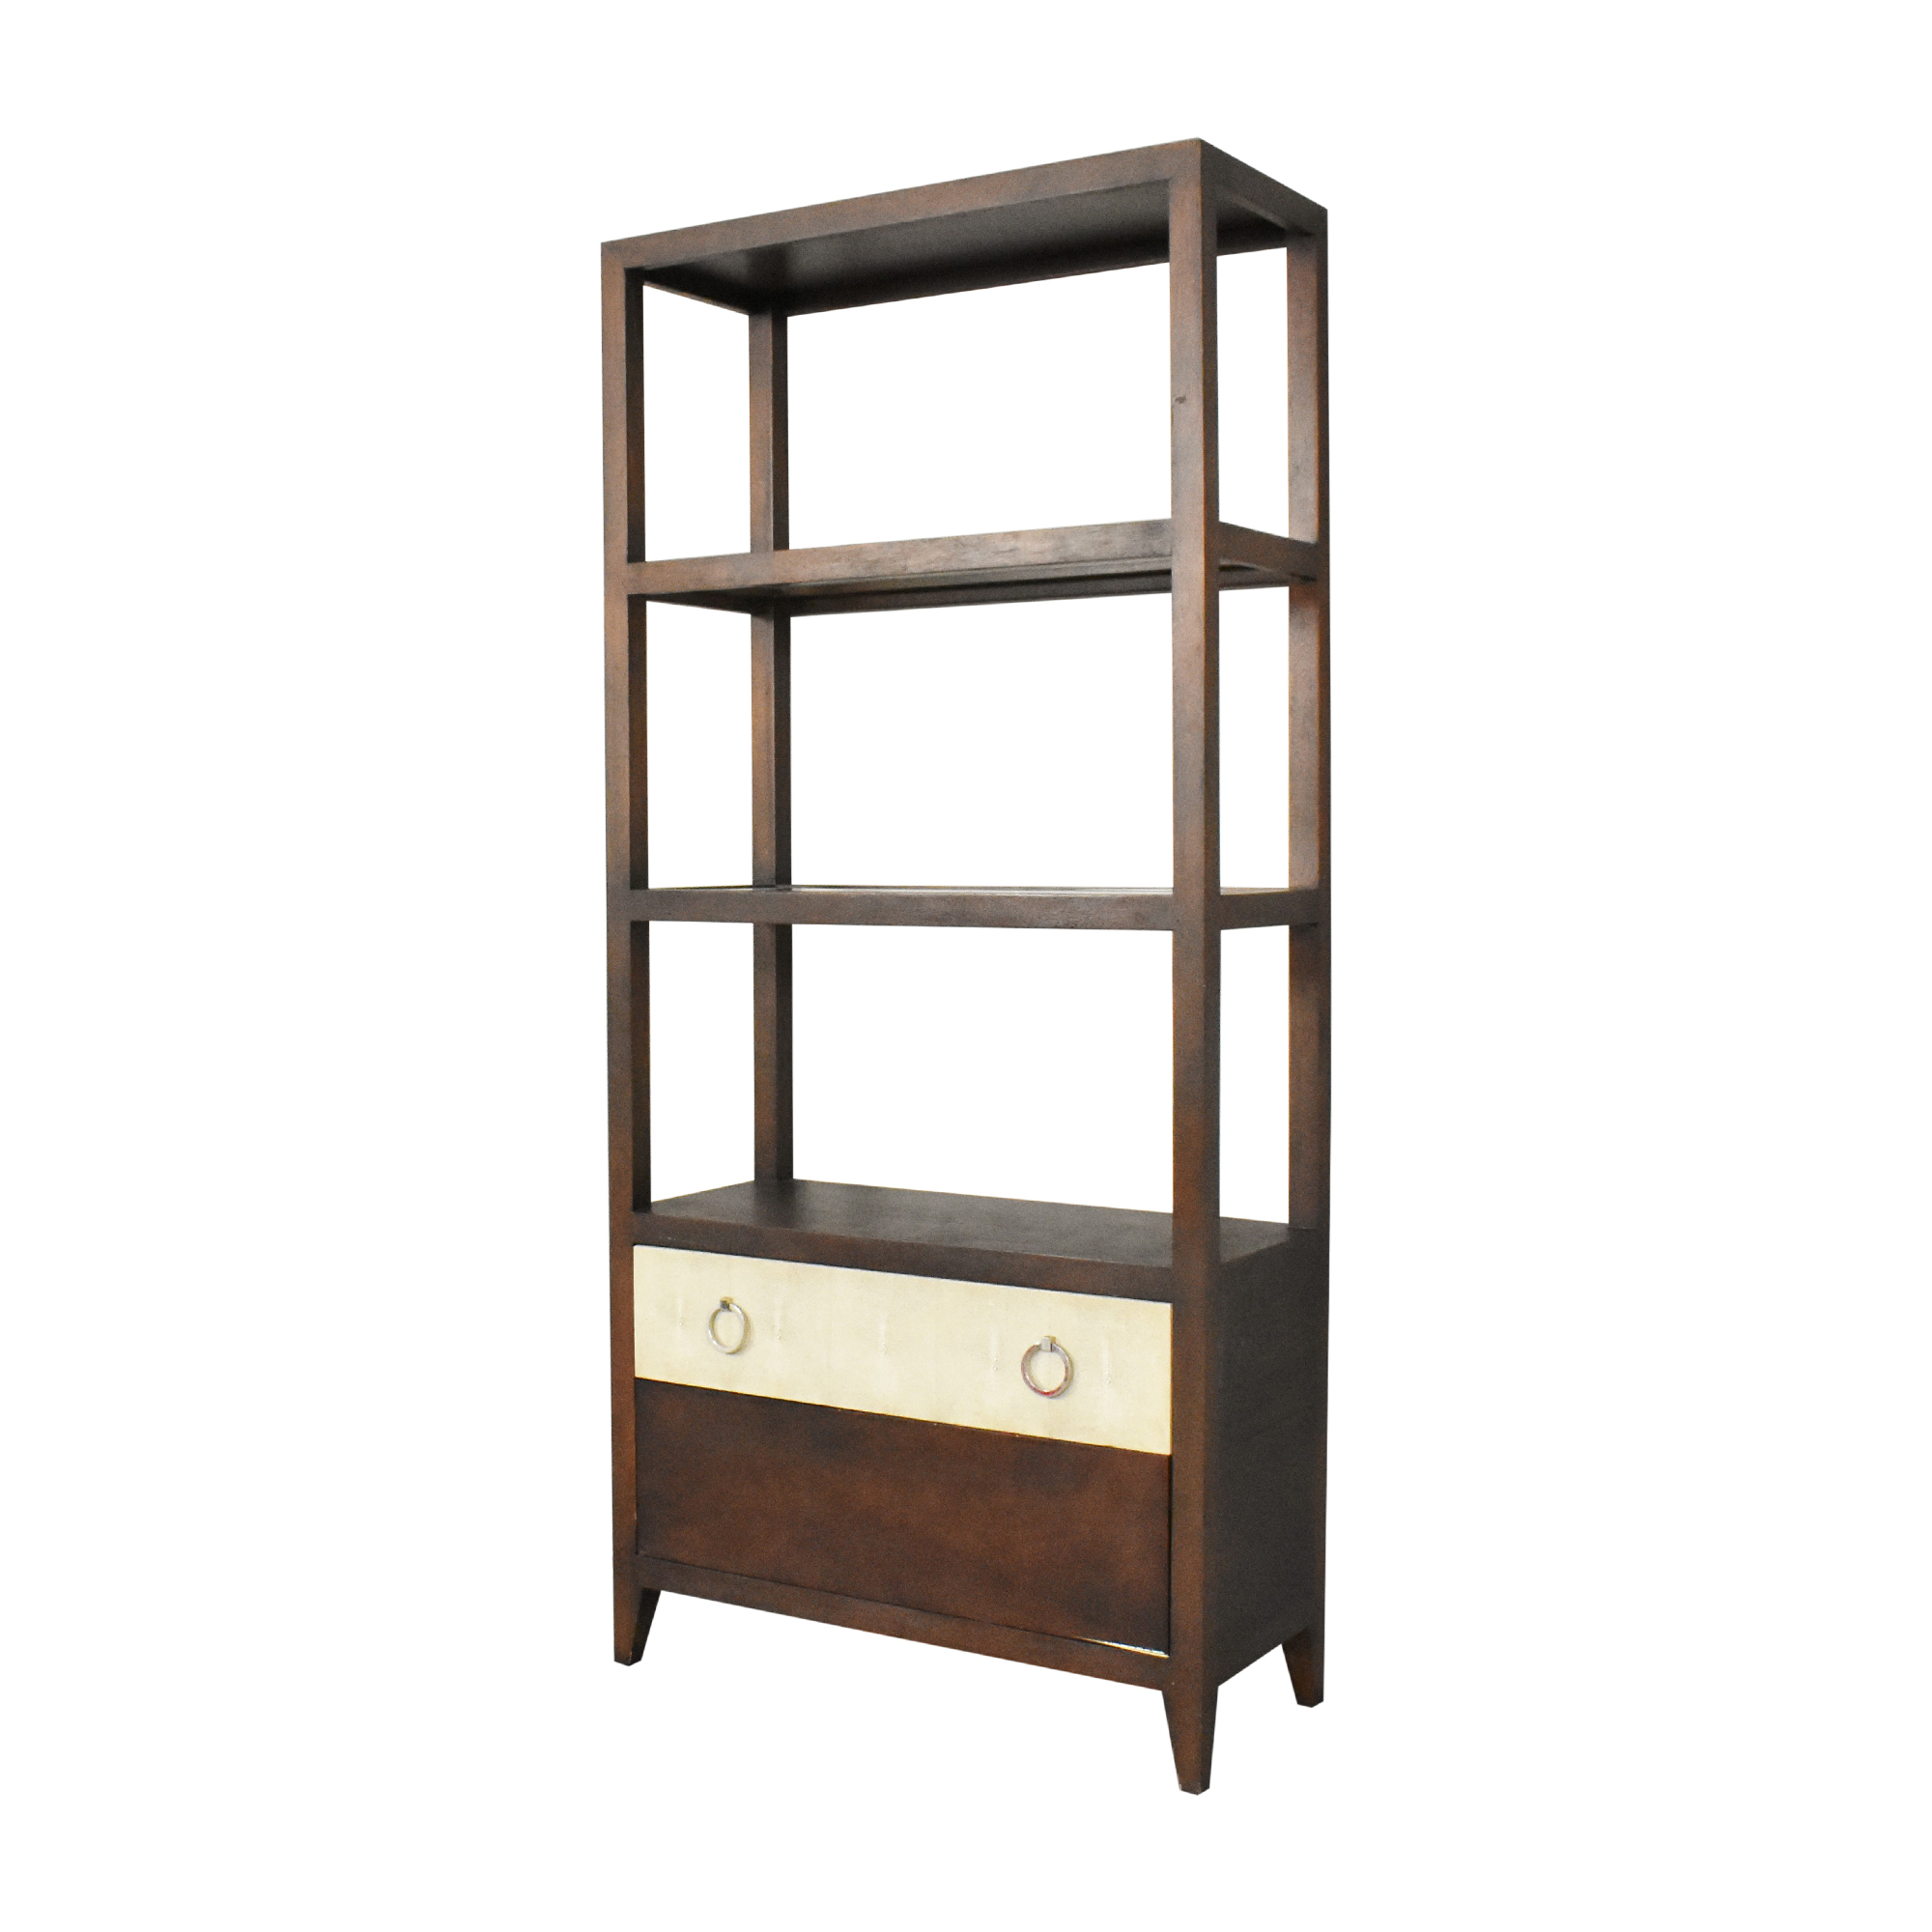 Lillian August Hickory White for Lillian August Breuer Etagere dimensions